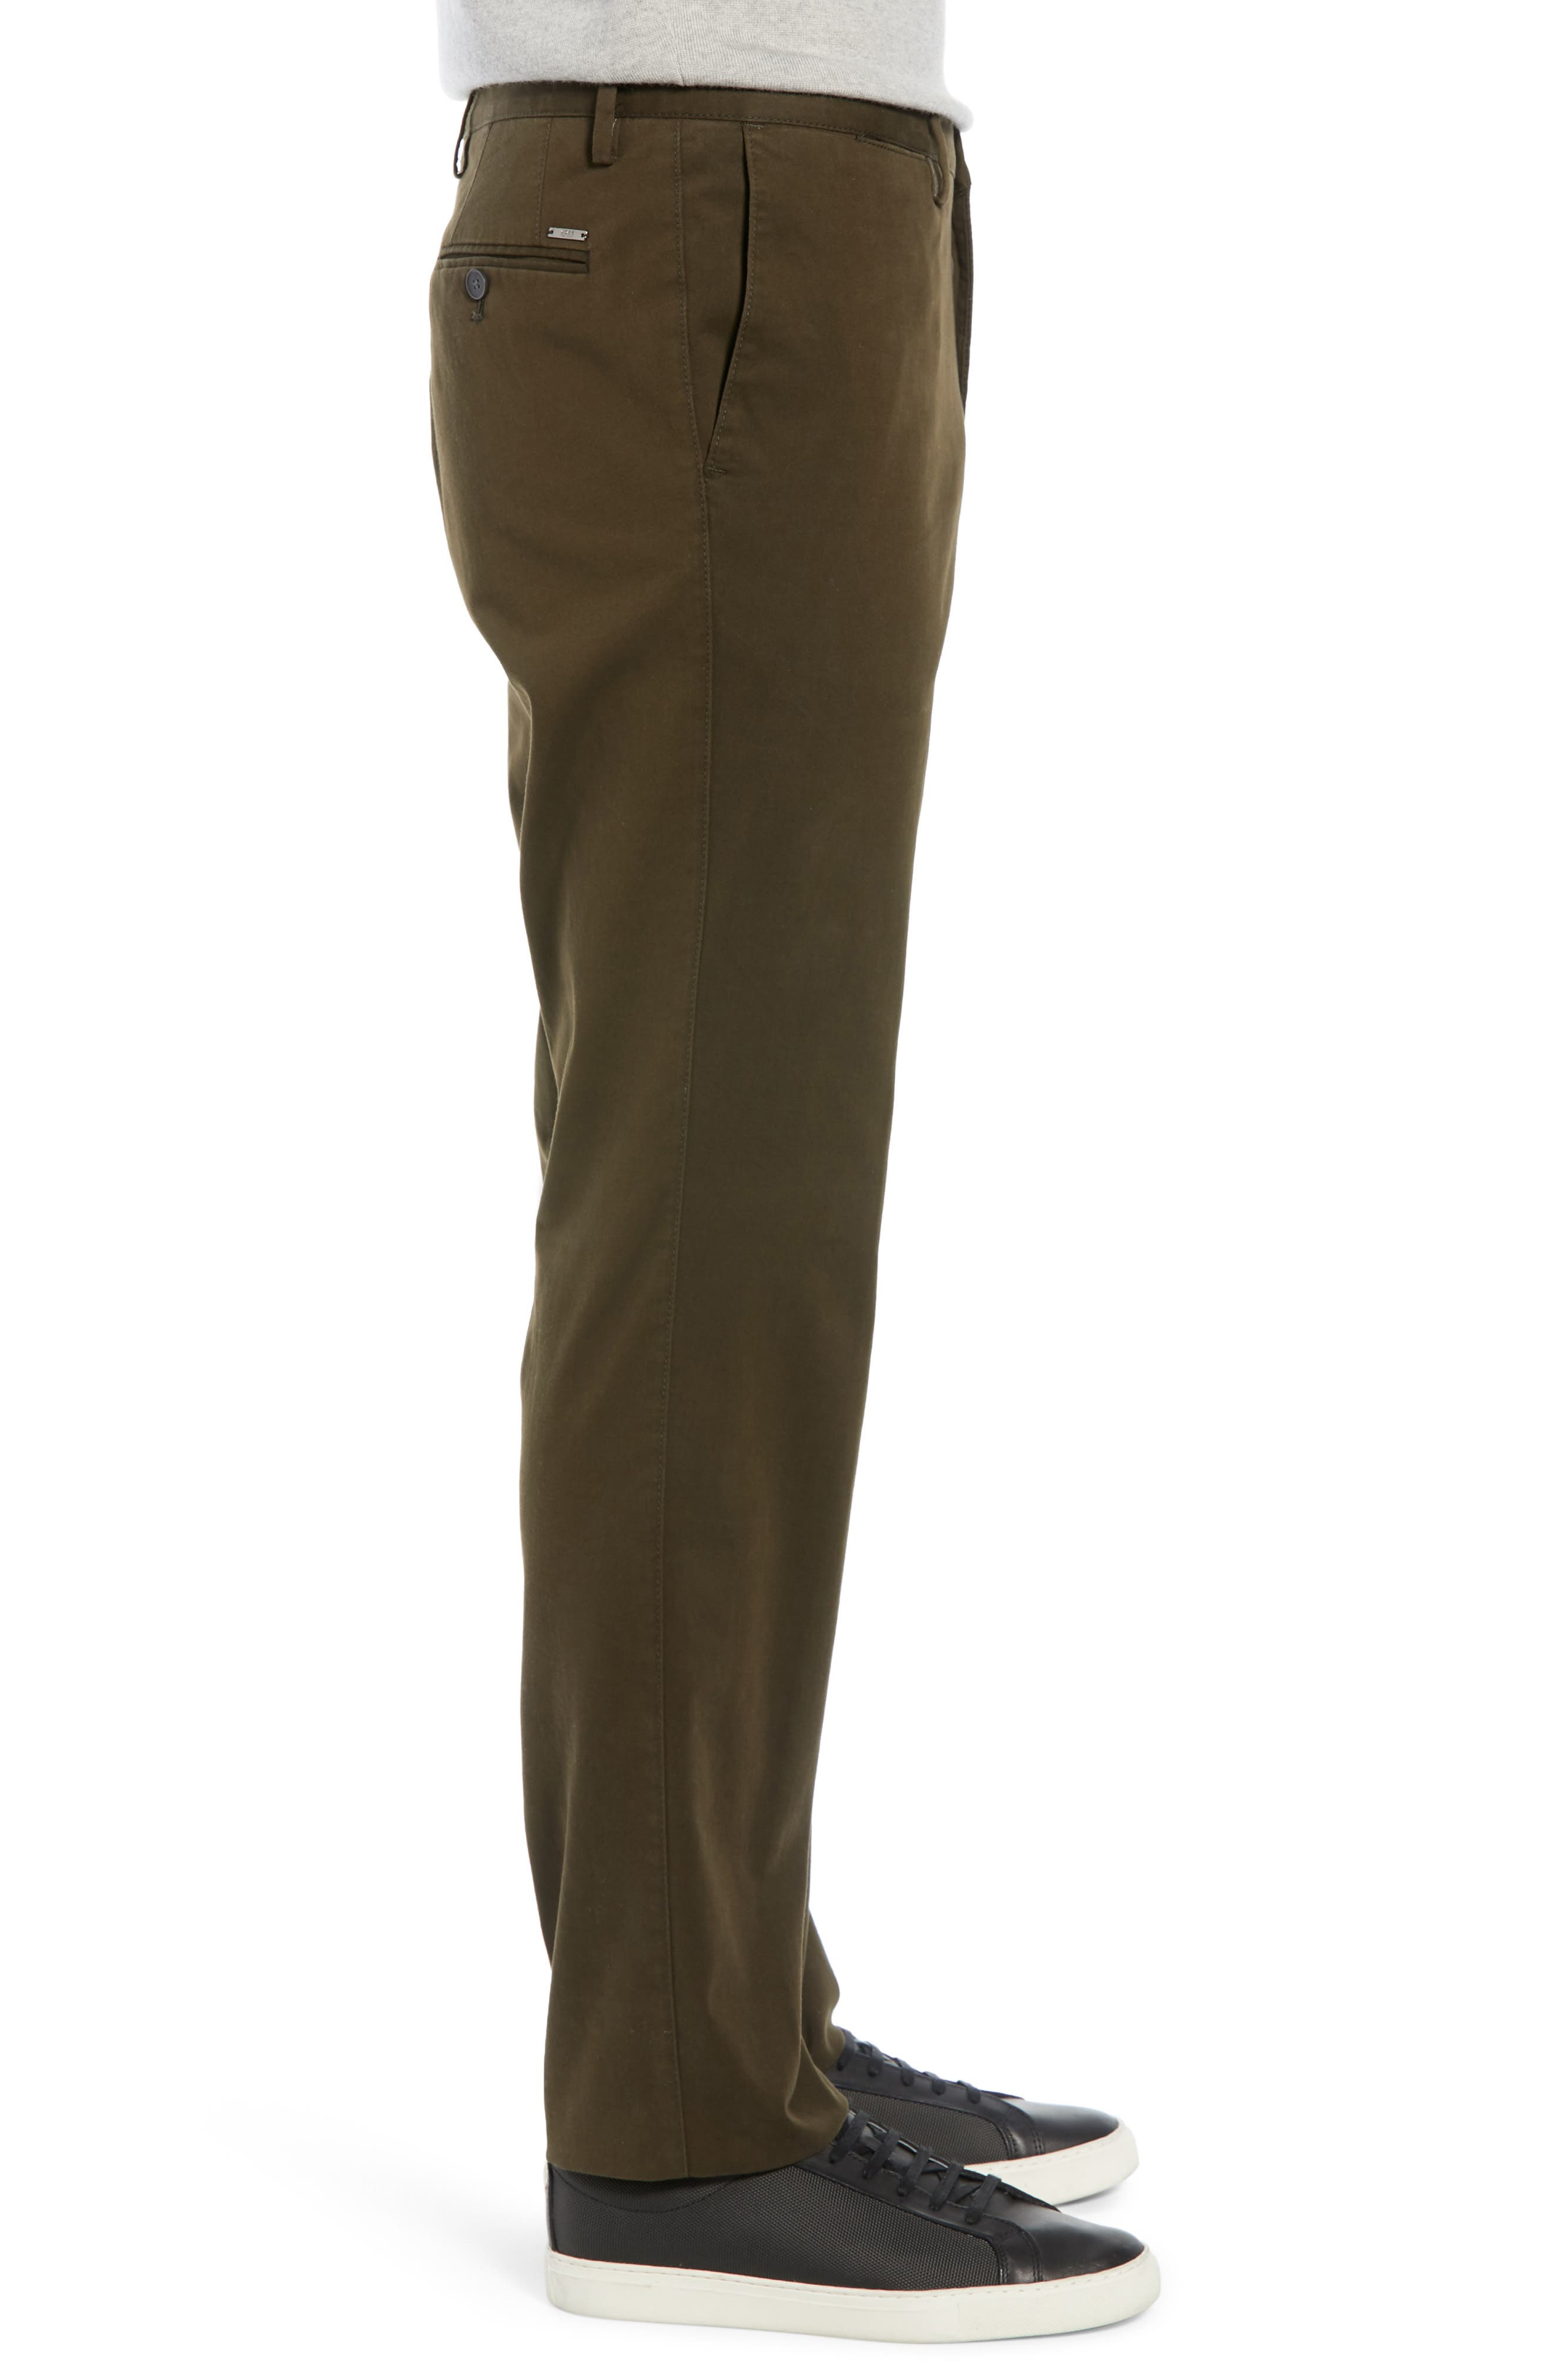 Stanino Flat Front Stretch Cotton Solid Trousers,                             Alternate thumbnail 3, color,                             OLIVE